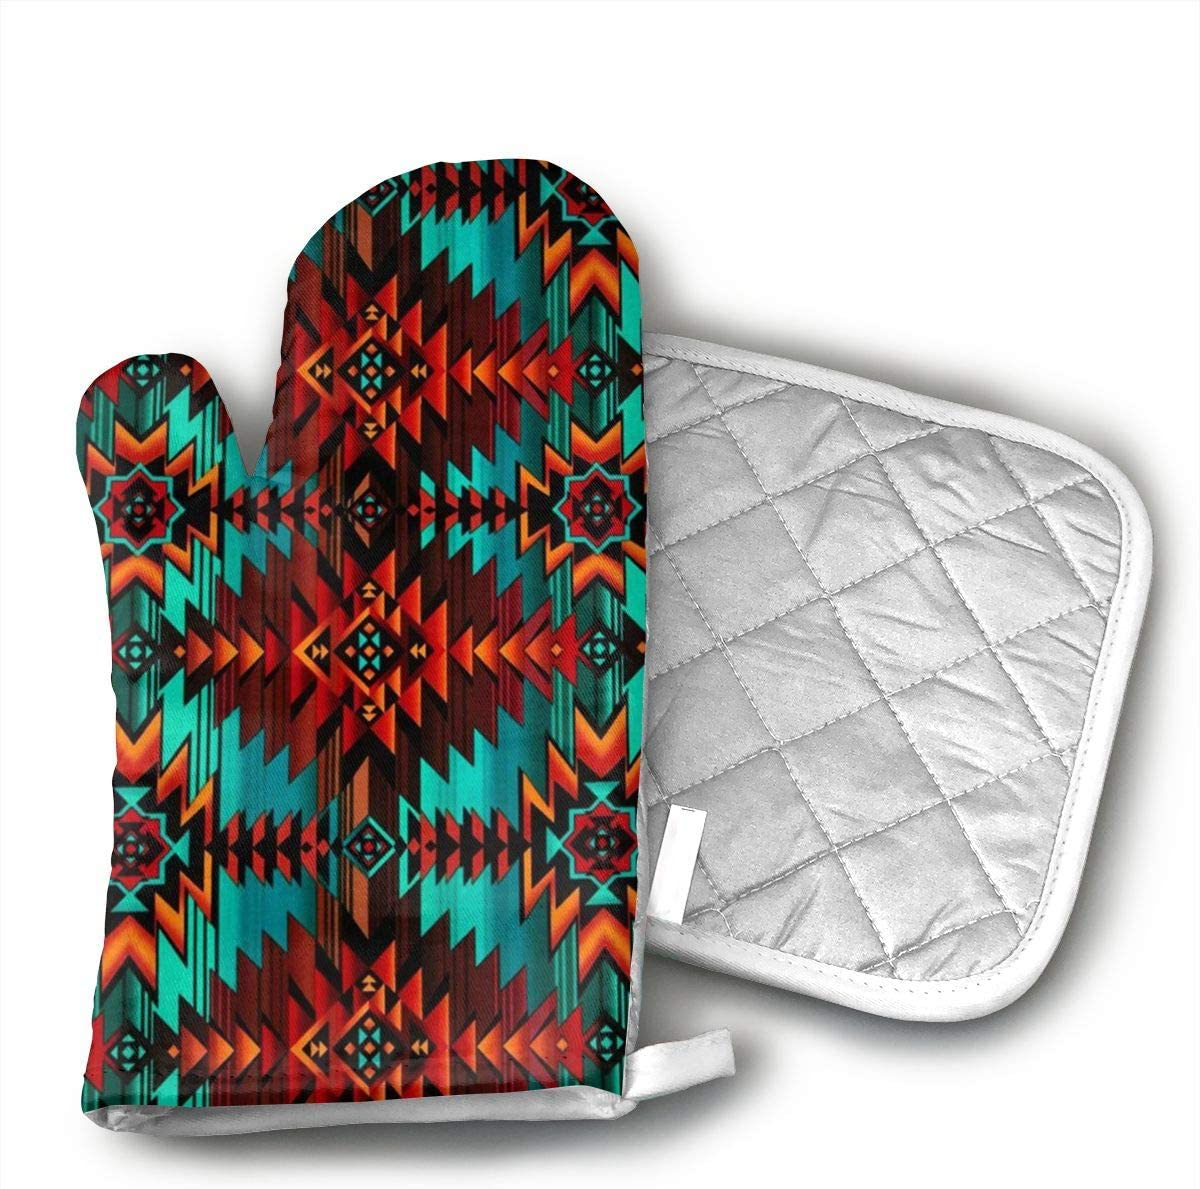 PanXaima Native Southwest Print Oven Gloves Non-Slip Kitchen Oven Mitts Heat Resistant Cooking Gloves for BBQ,Baking,Grilling,Barbecue Potholder